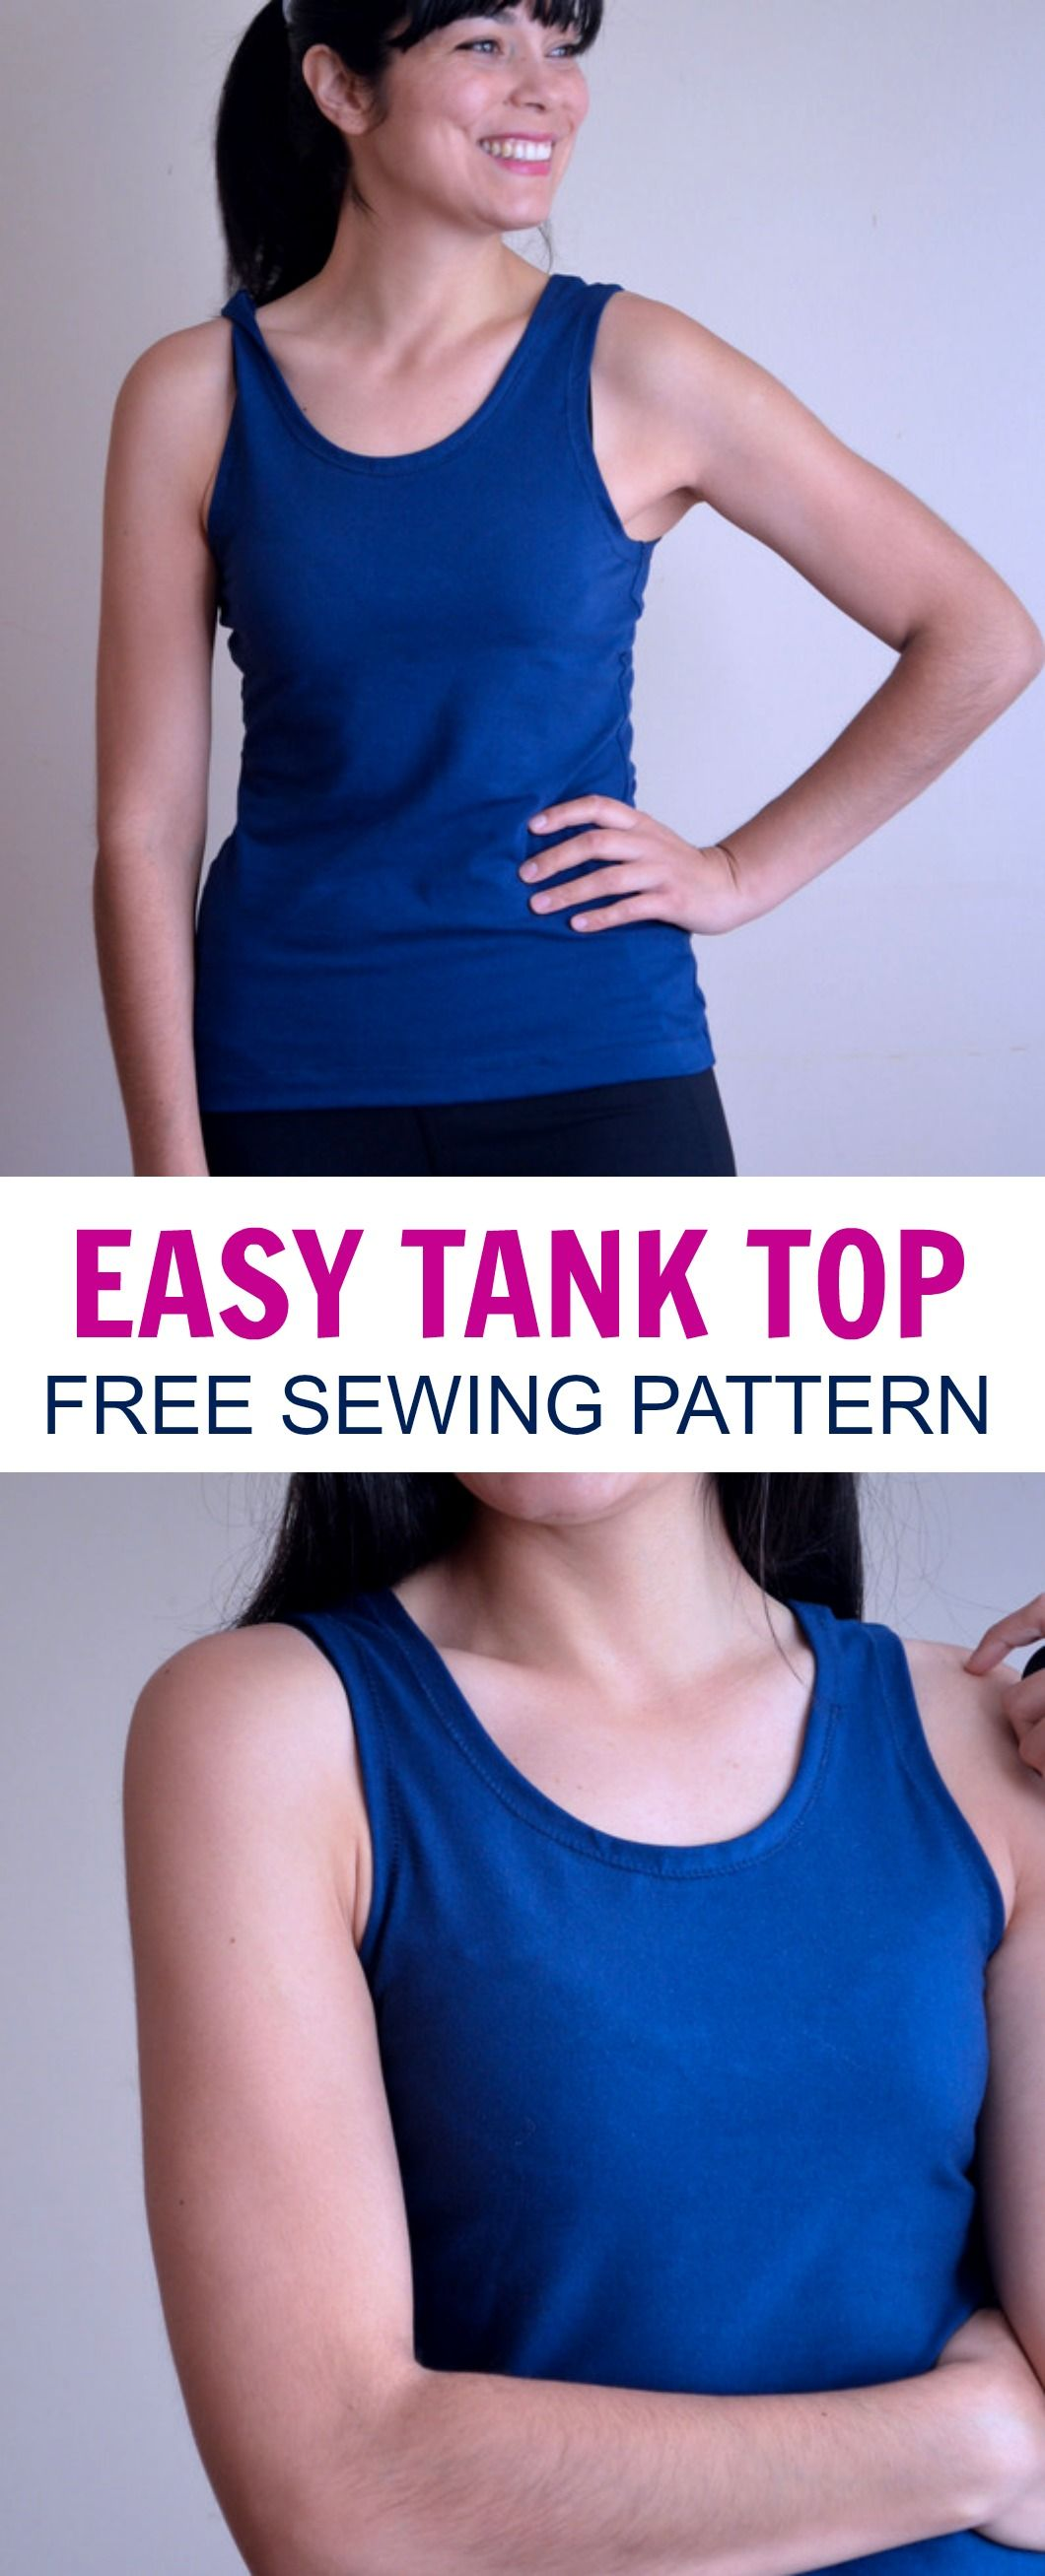 e4a634dfe3a56 Free Tank Top Free Pattern  Learn how to make an easy tank top with this  step by step sewing tutorial. Free PDF printable pattern included!